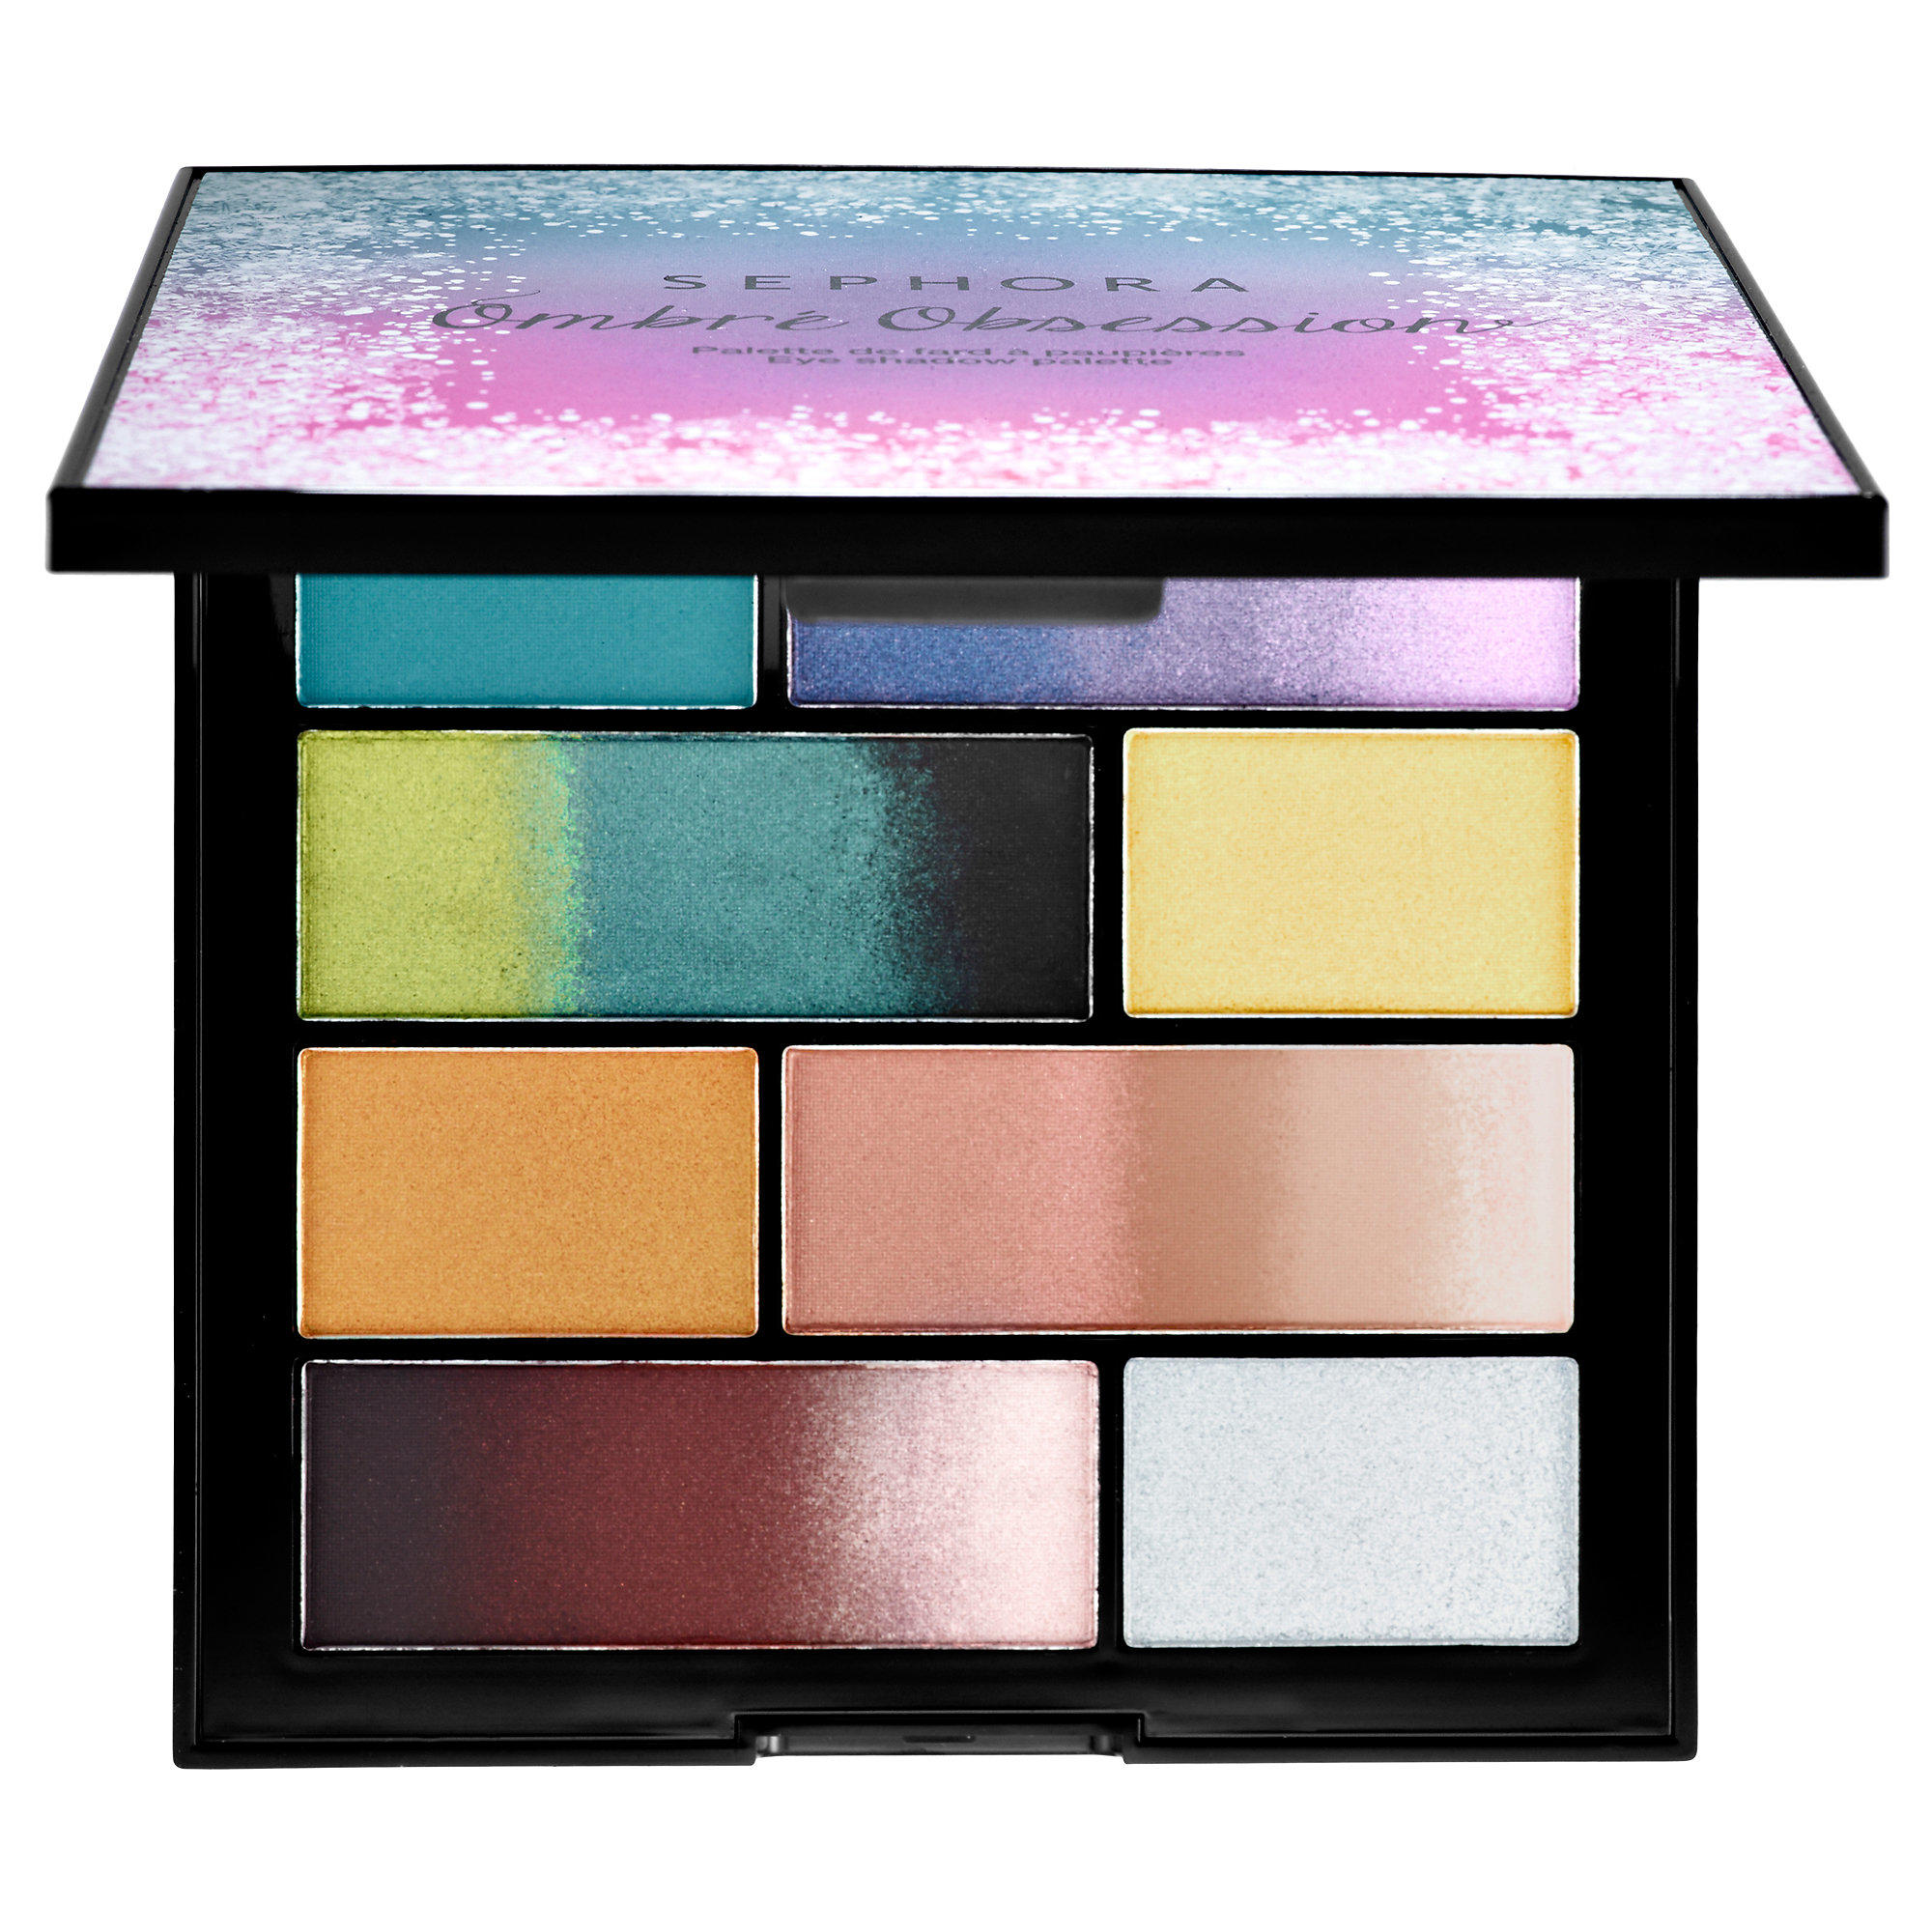 Sephora Ombre Obsession Eyeshadow Palette